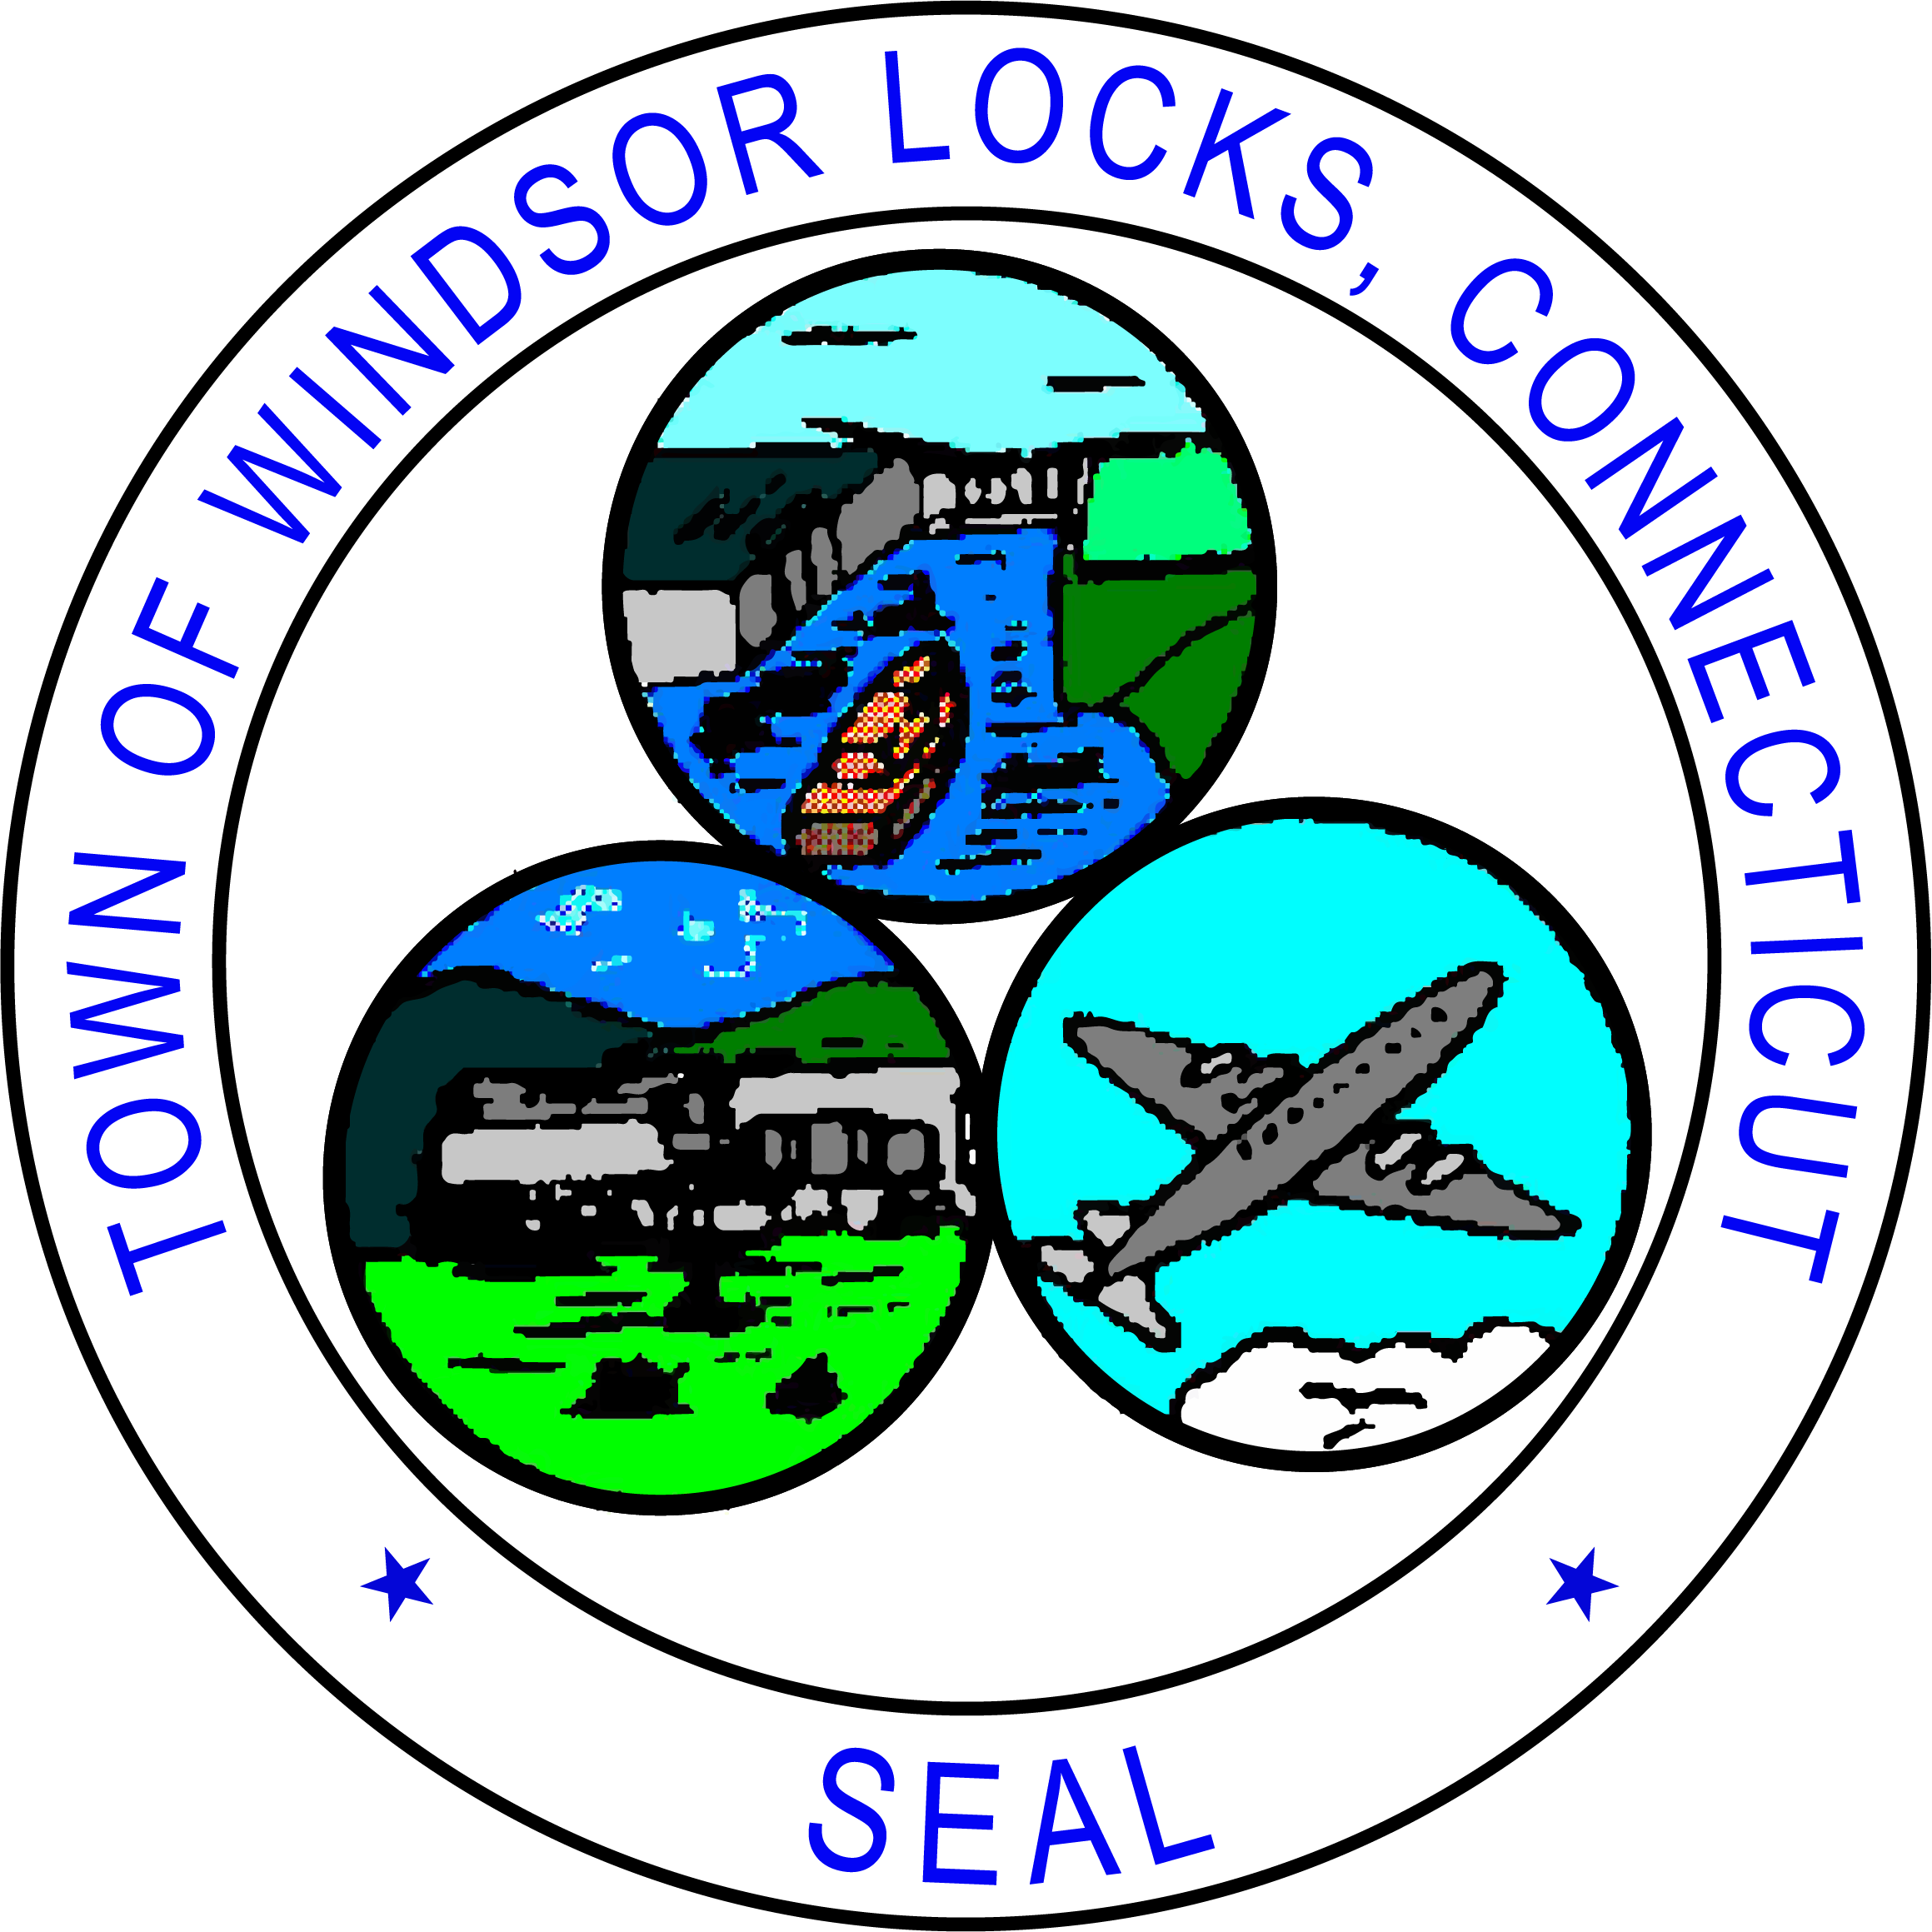 windsor locks logo